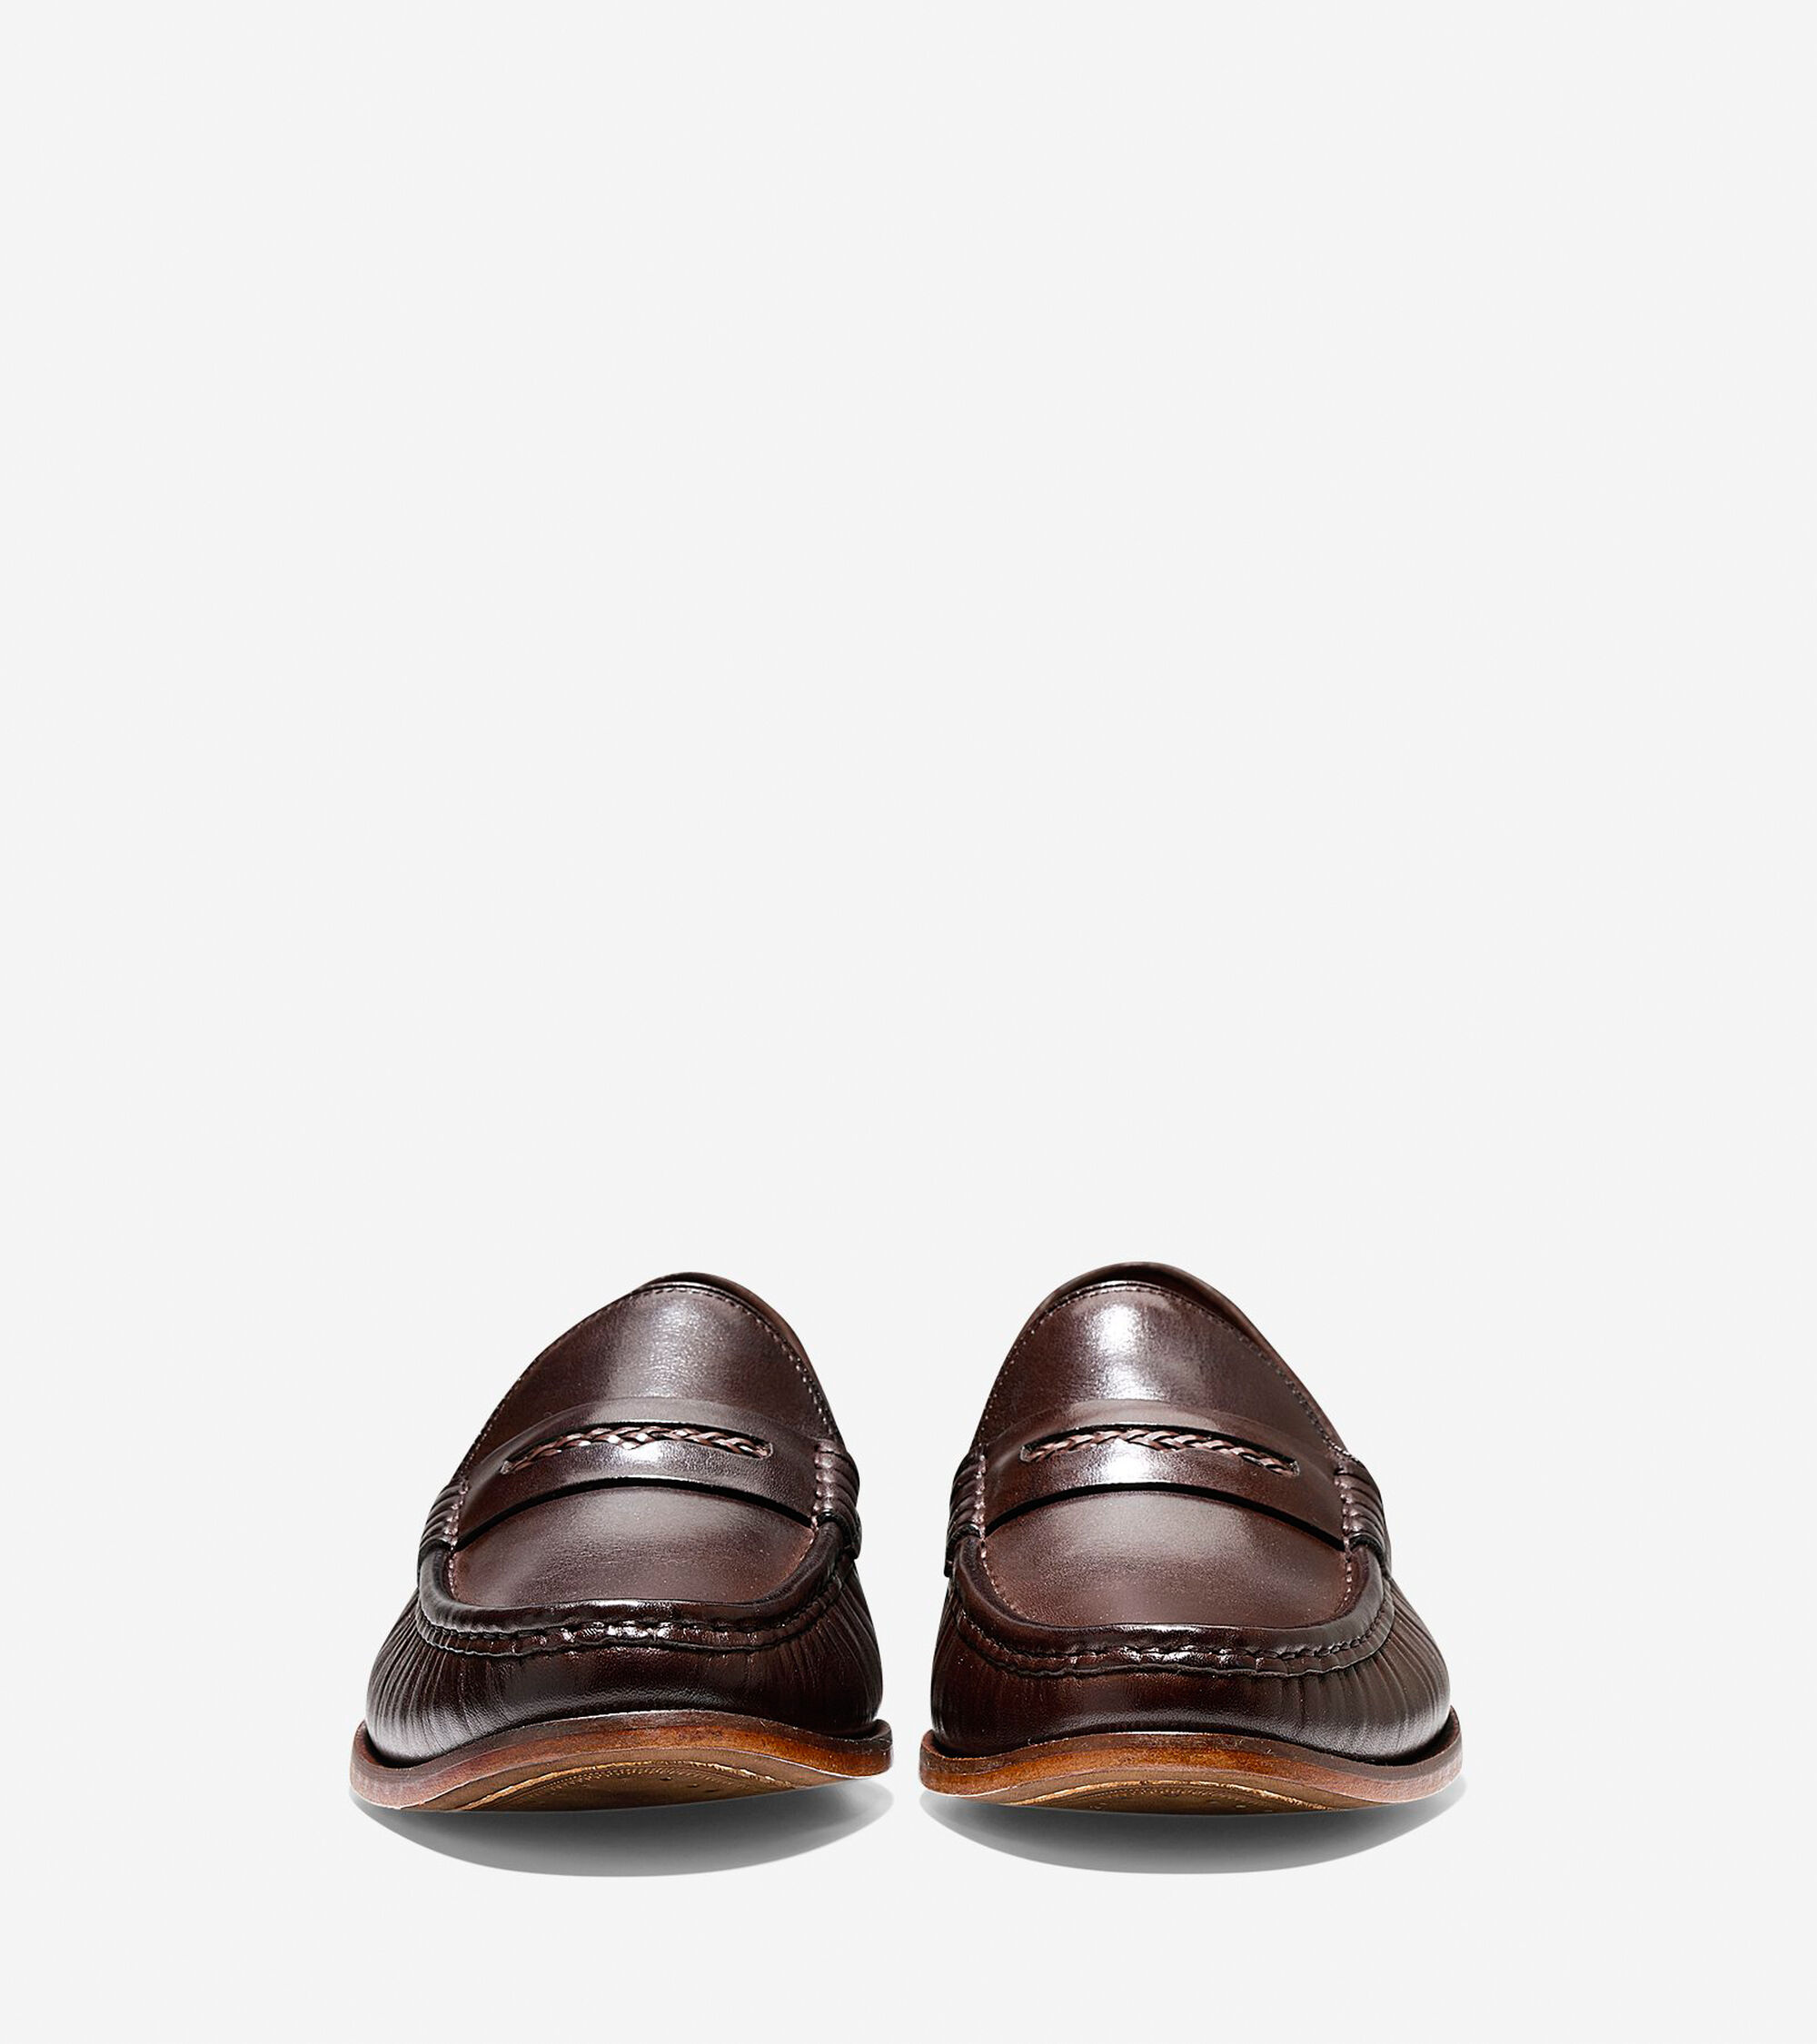 Mens Pinch Gotham Penny Loafers In Chestnut Cole Haan D Island Shoes Casual Oxford Genuine Leather Brown Loafer